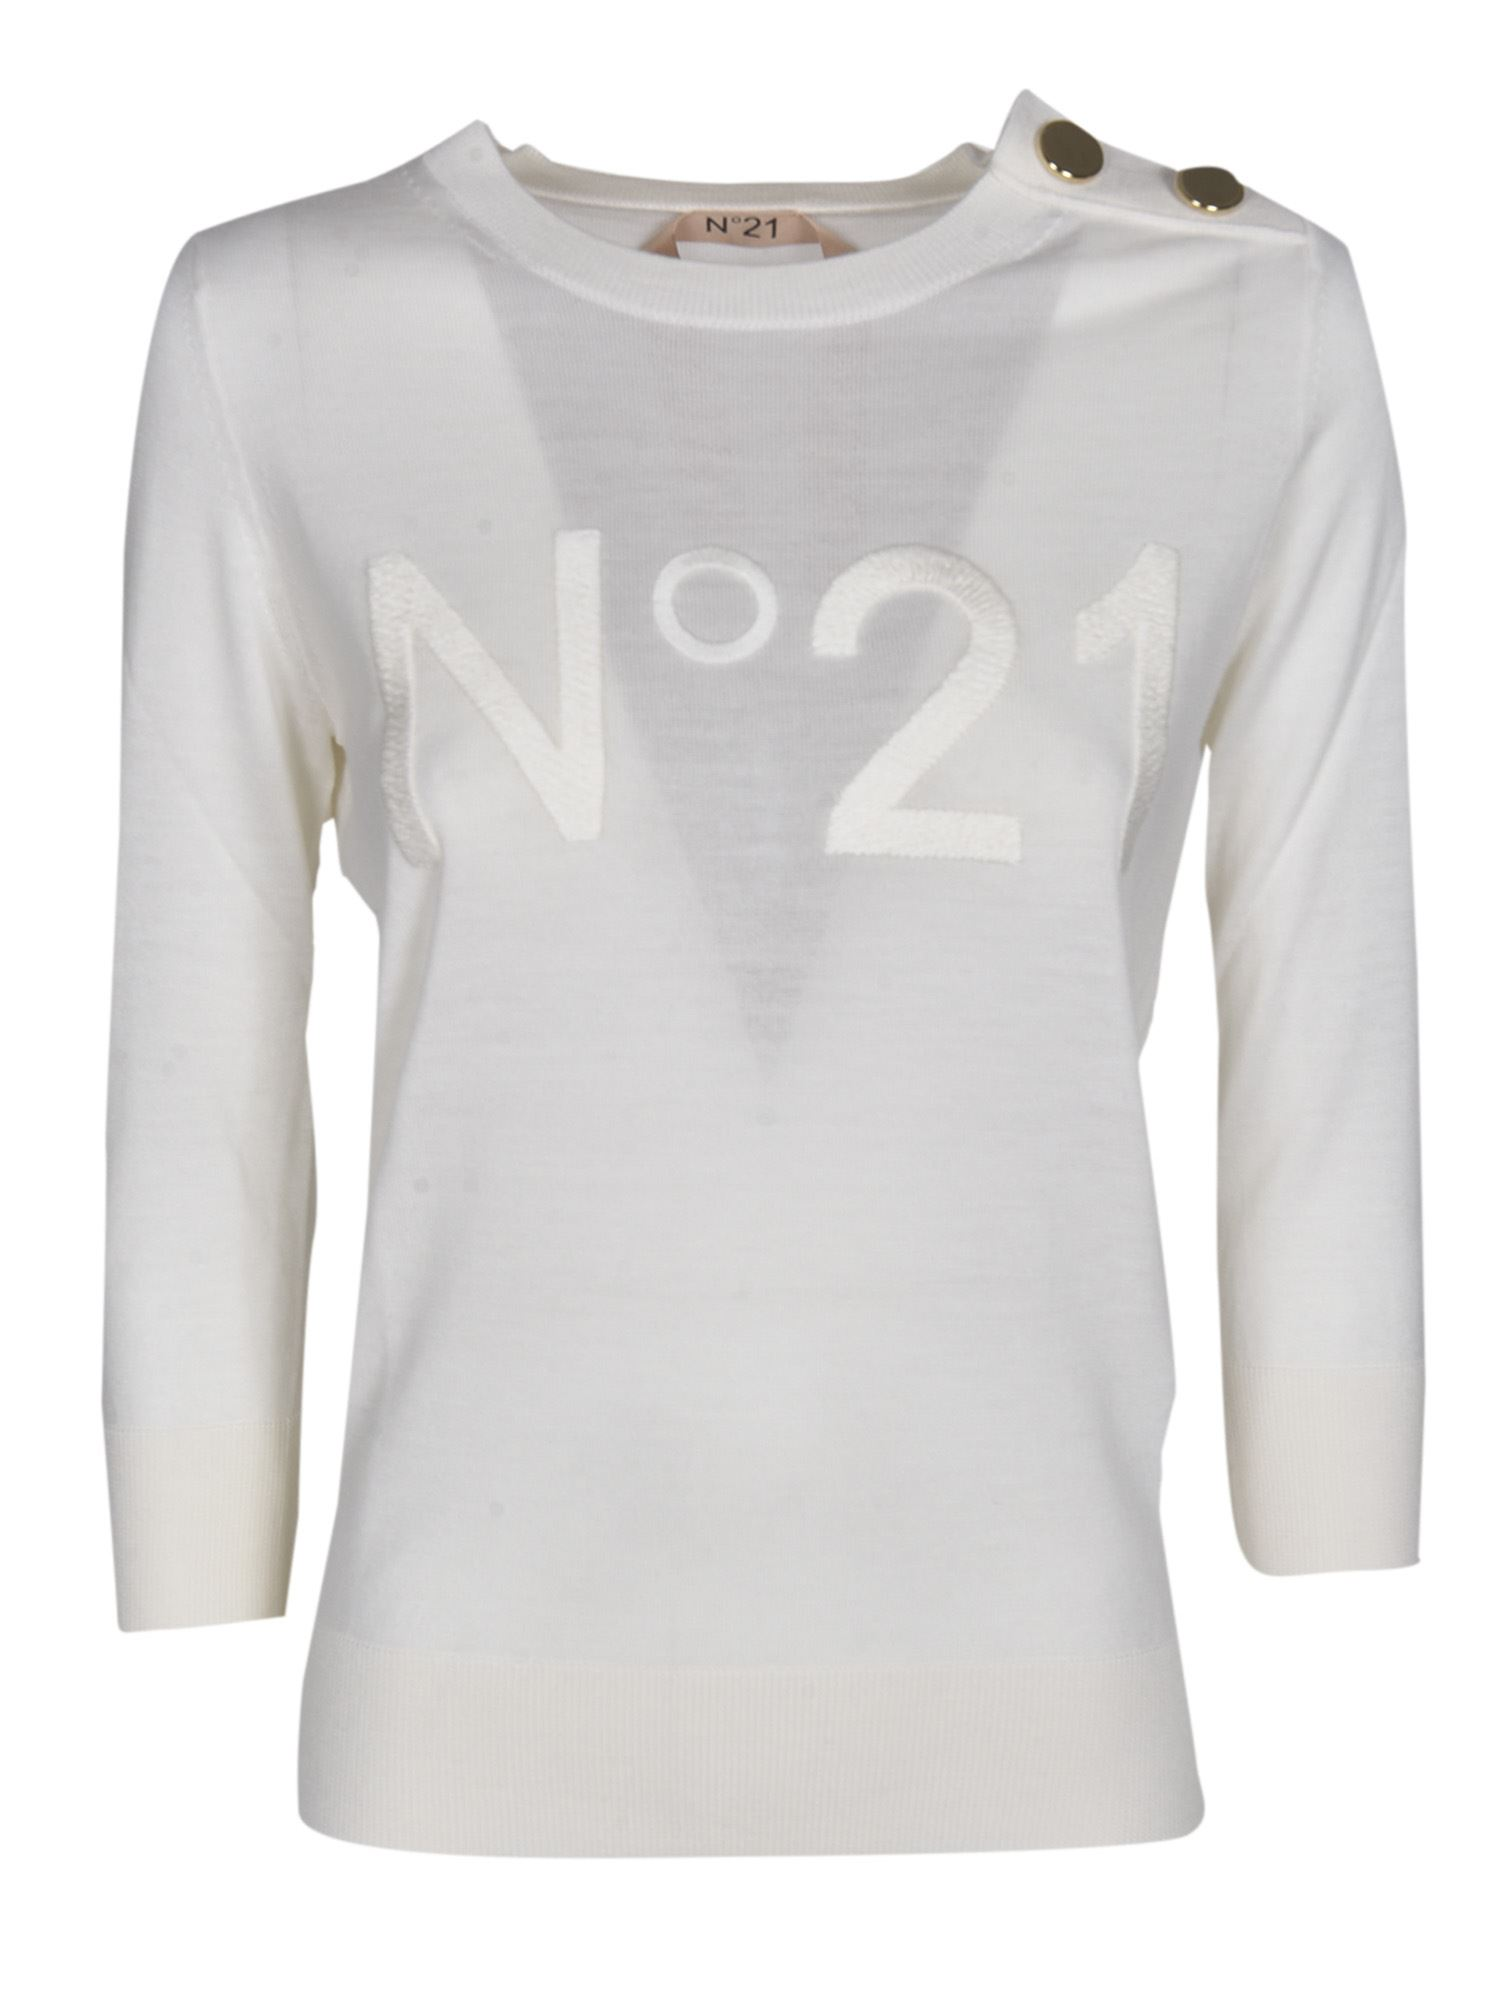 N°21 EMBROIDERED LOGO SWEATER IN WHITE